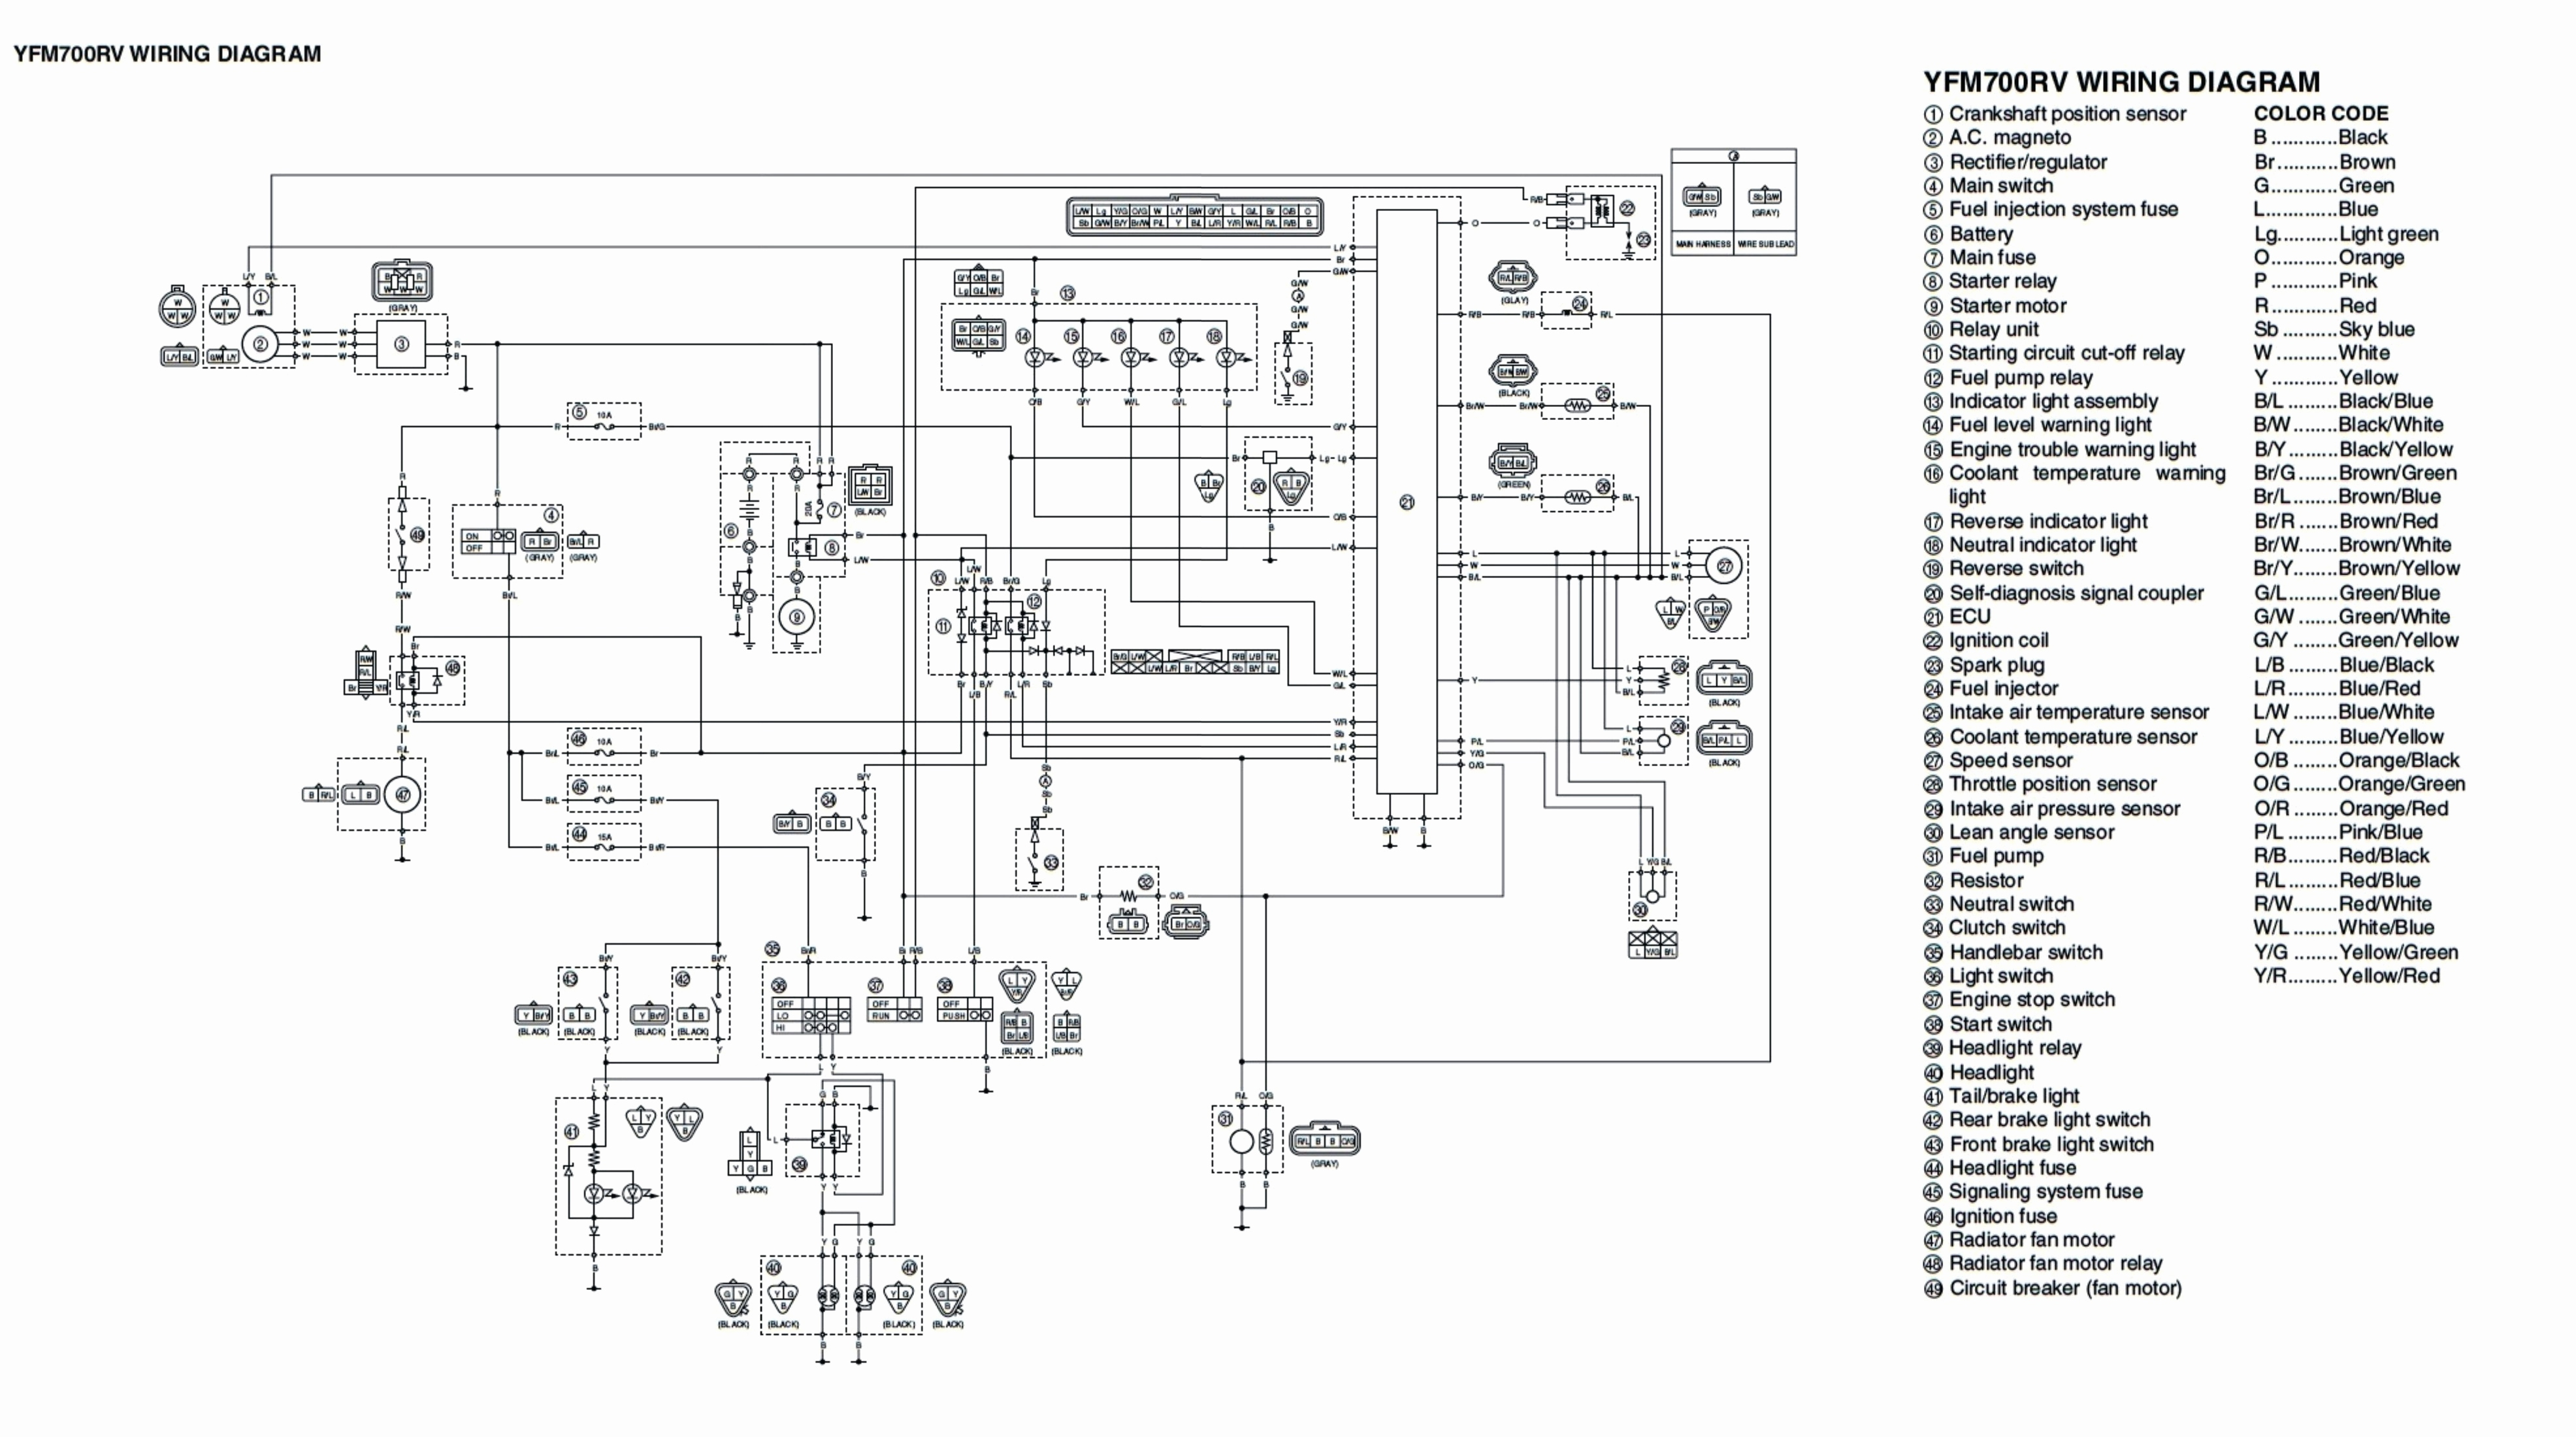 Yamaha 703 Remote Control Wiring Diagram | Manual E-Books - Yamaha 703 Remote Control Wiring Diagram